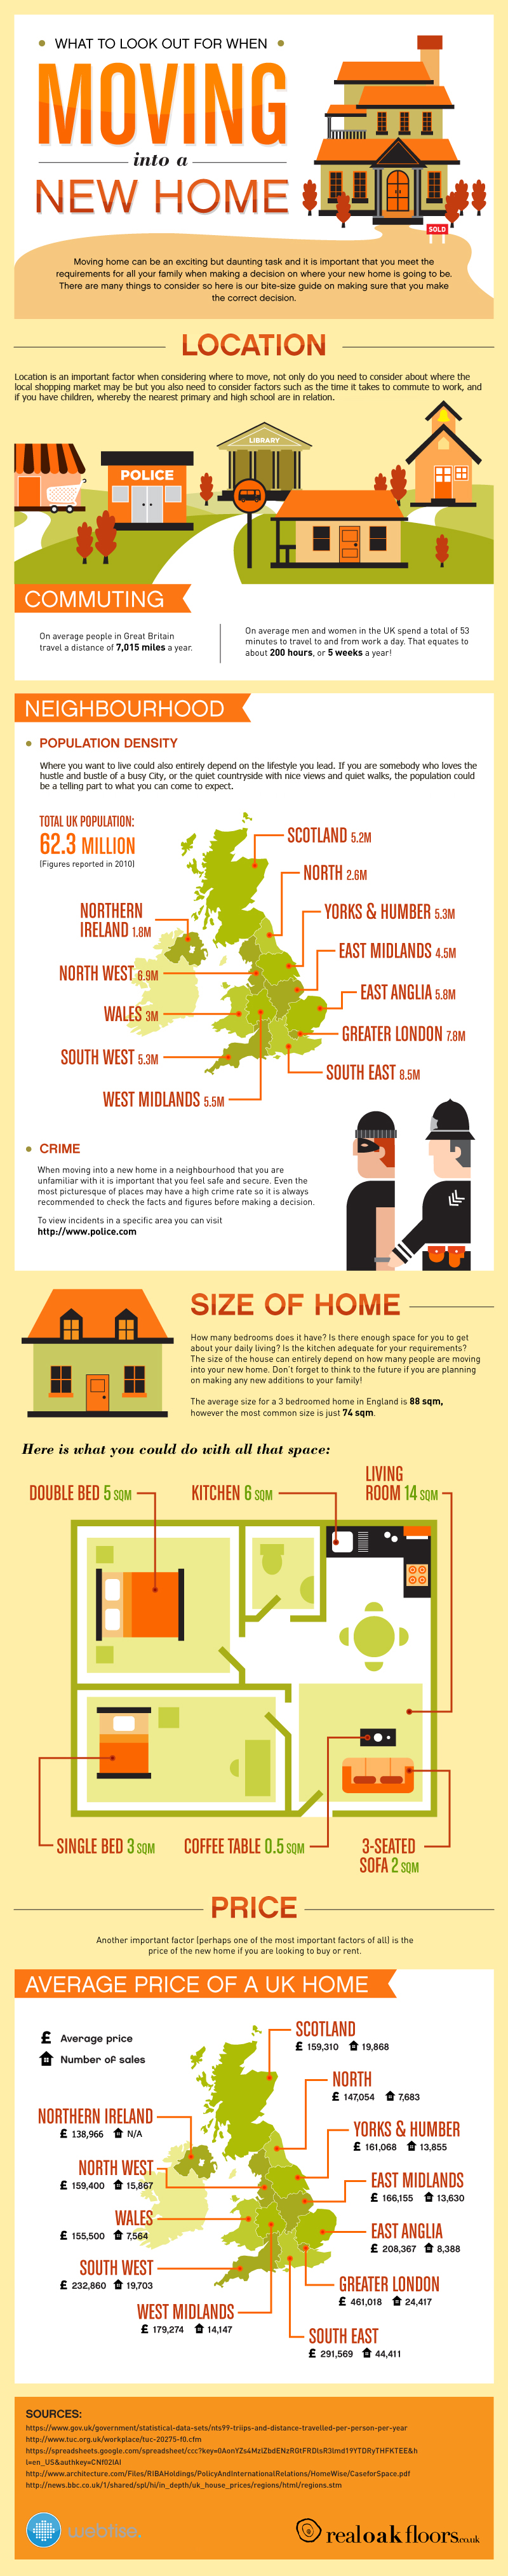 rof infographic What to Look out for When Moving into a New Home [INFOGRAPHIC]